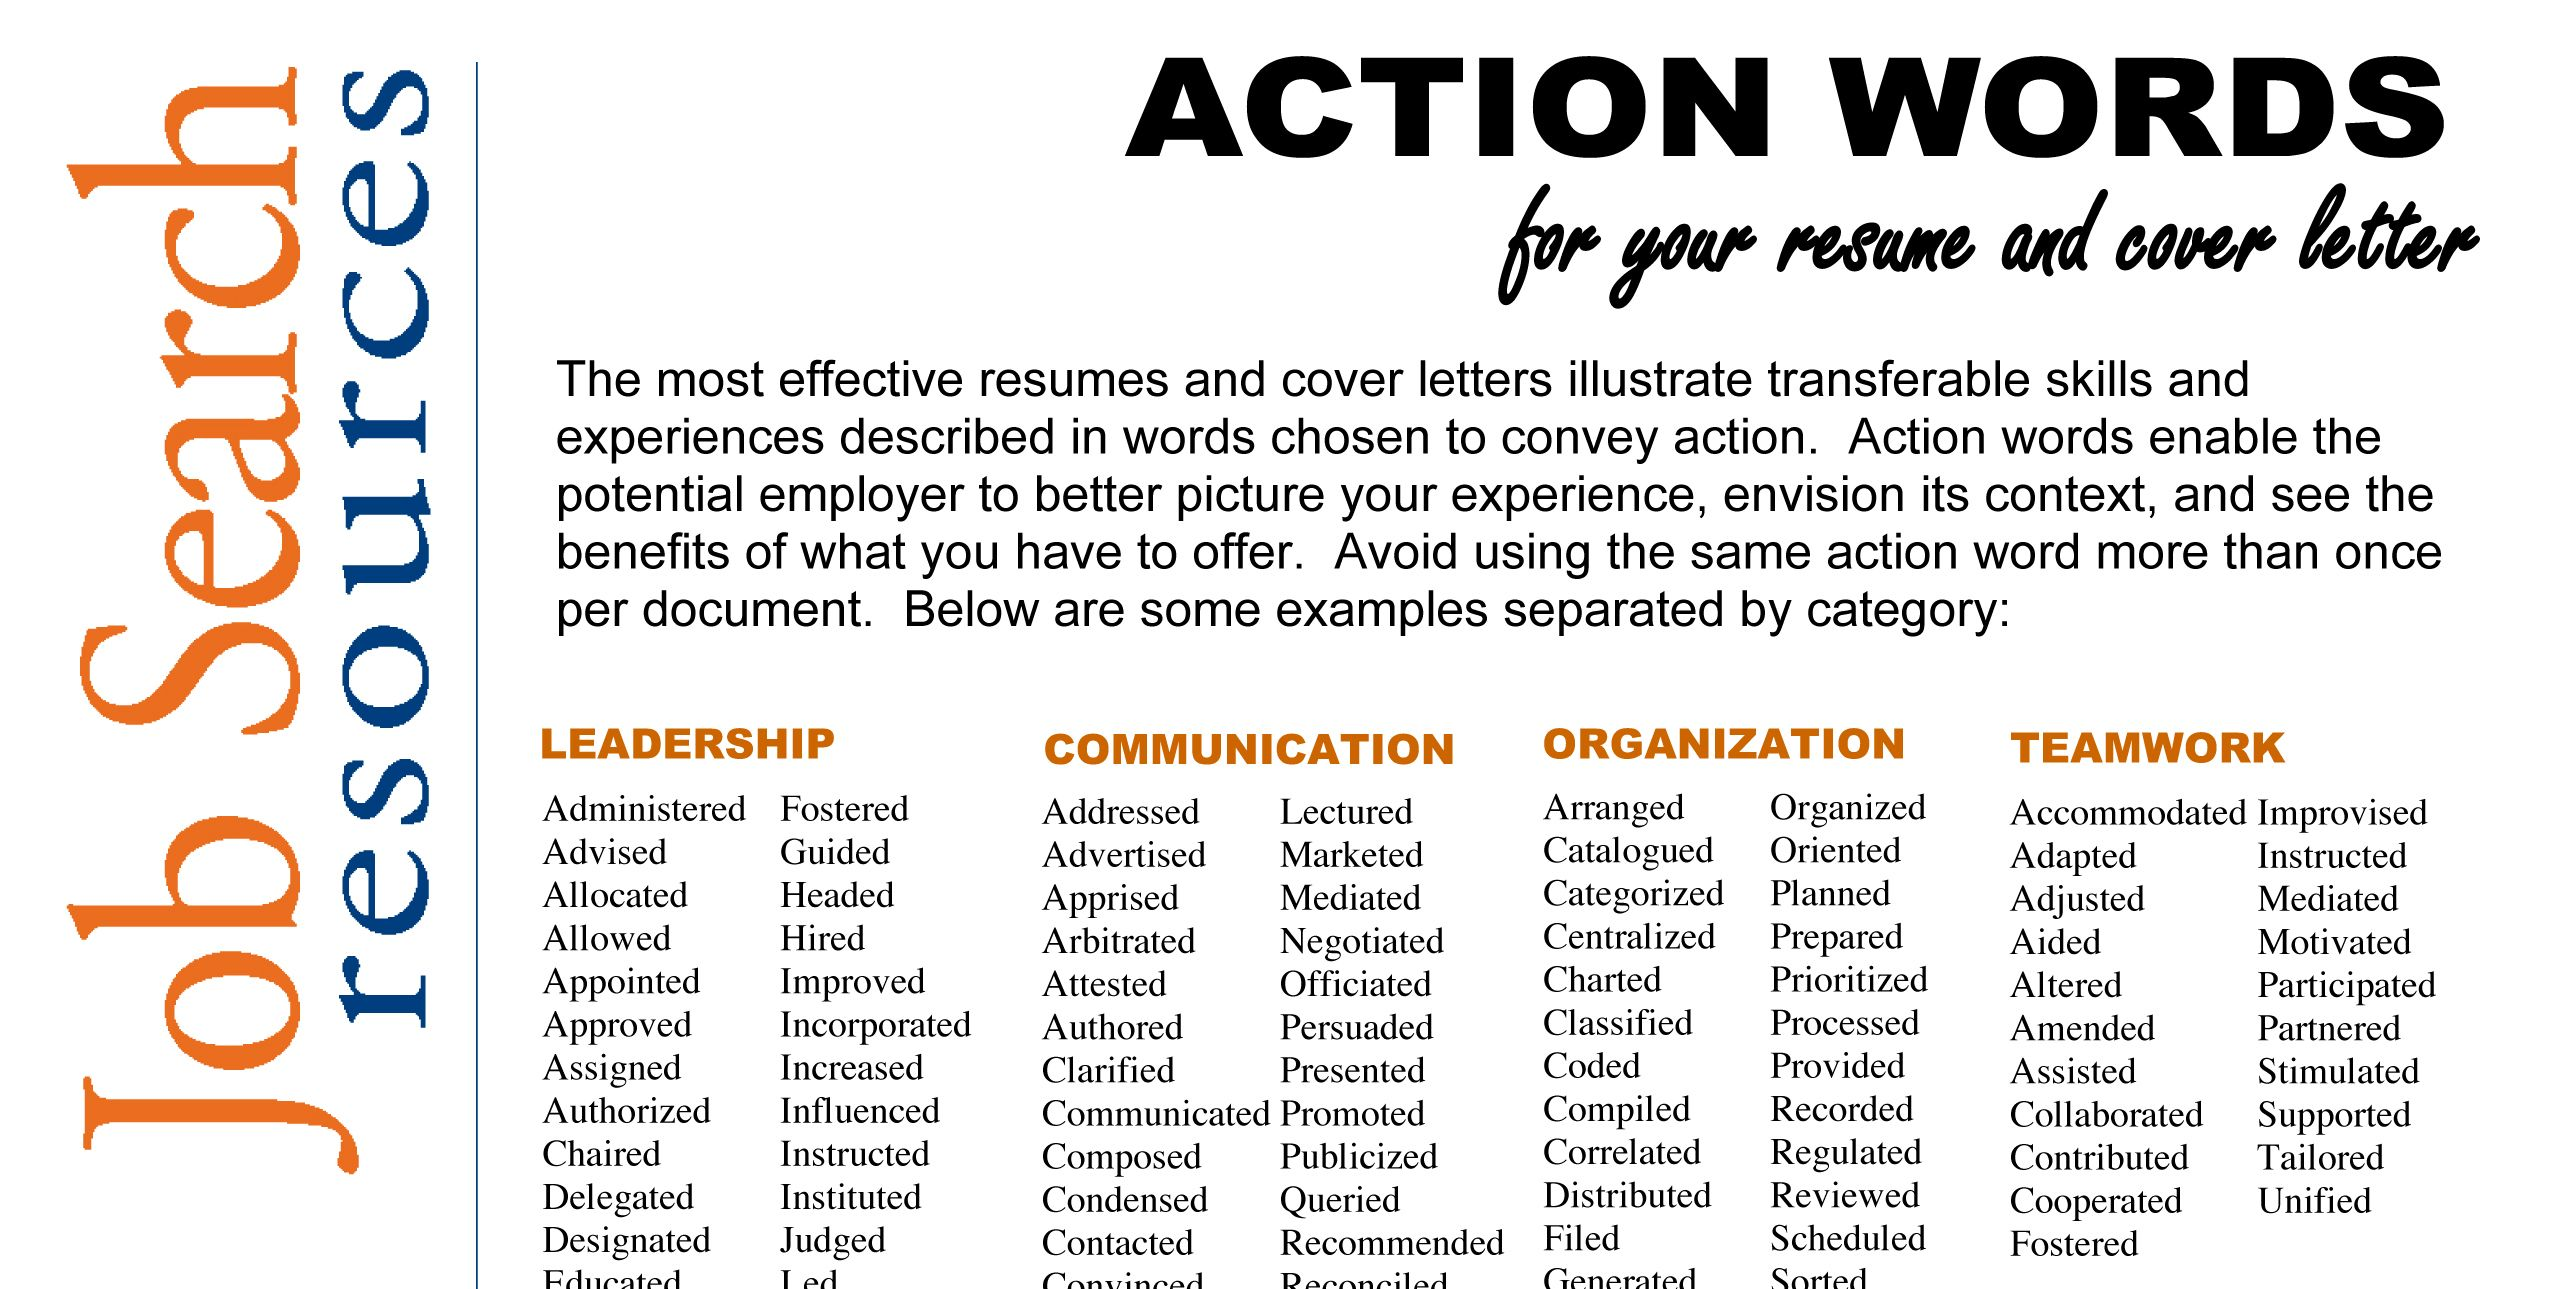 Amazing Are You Using Action Words For Your Resume? Hereu0027s A List Of Action Words  That  Action Words For Resumes